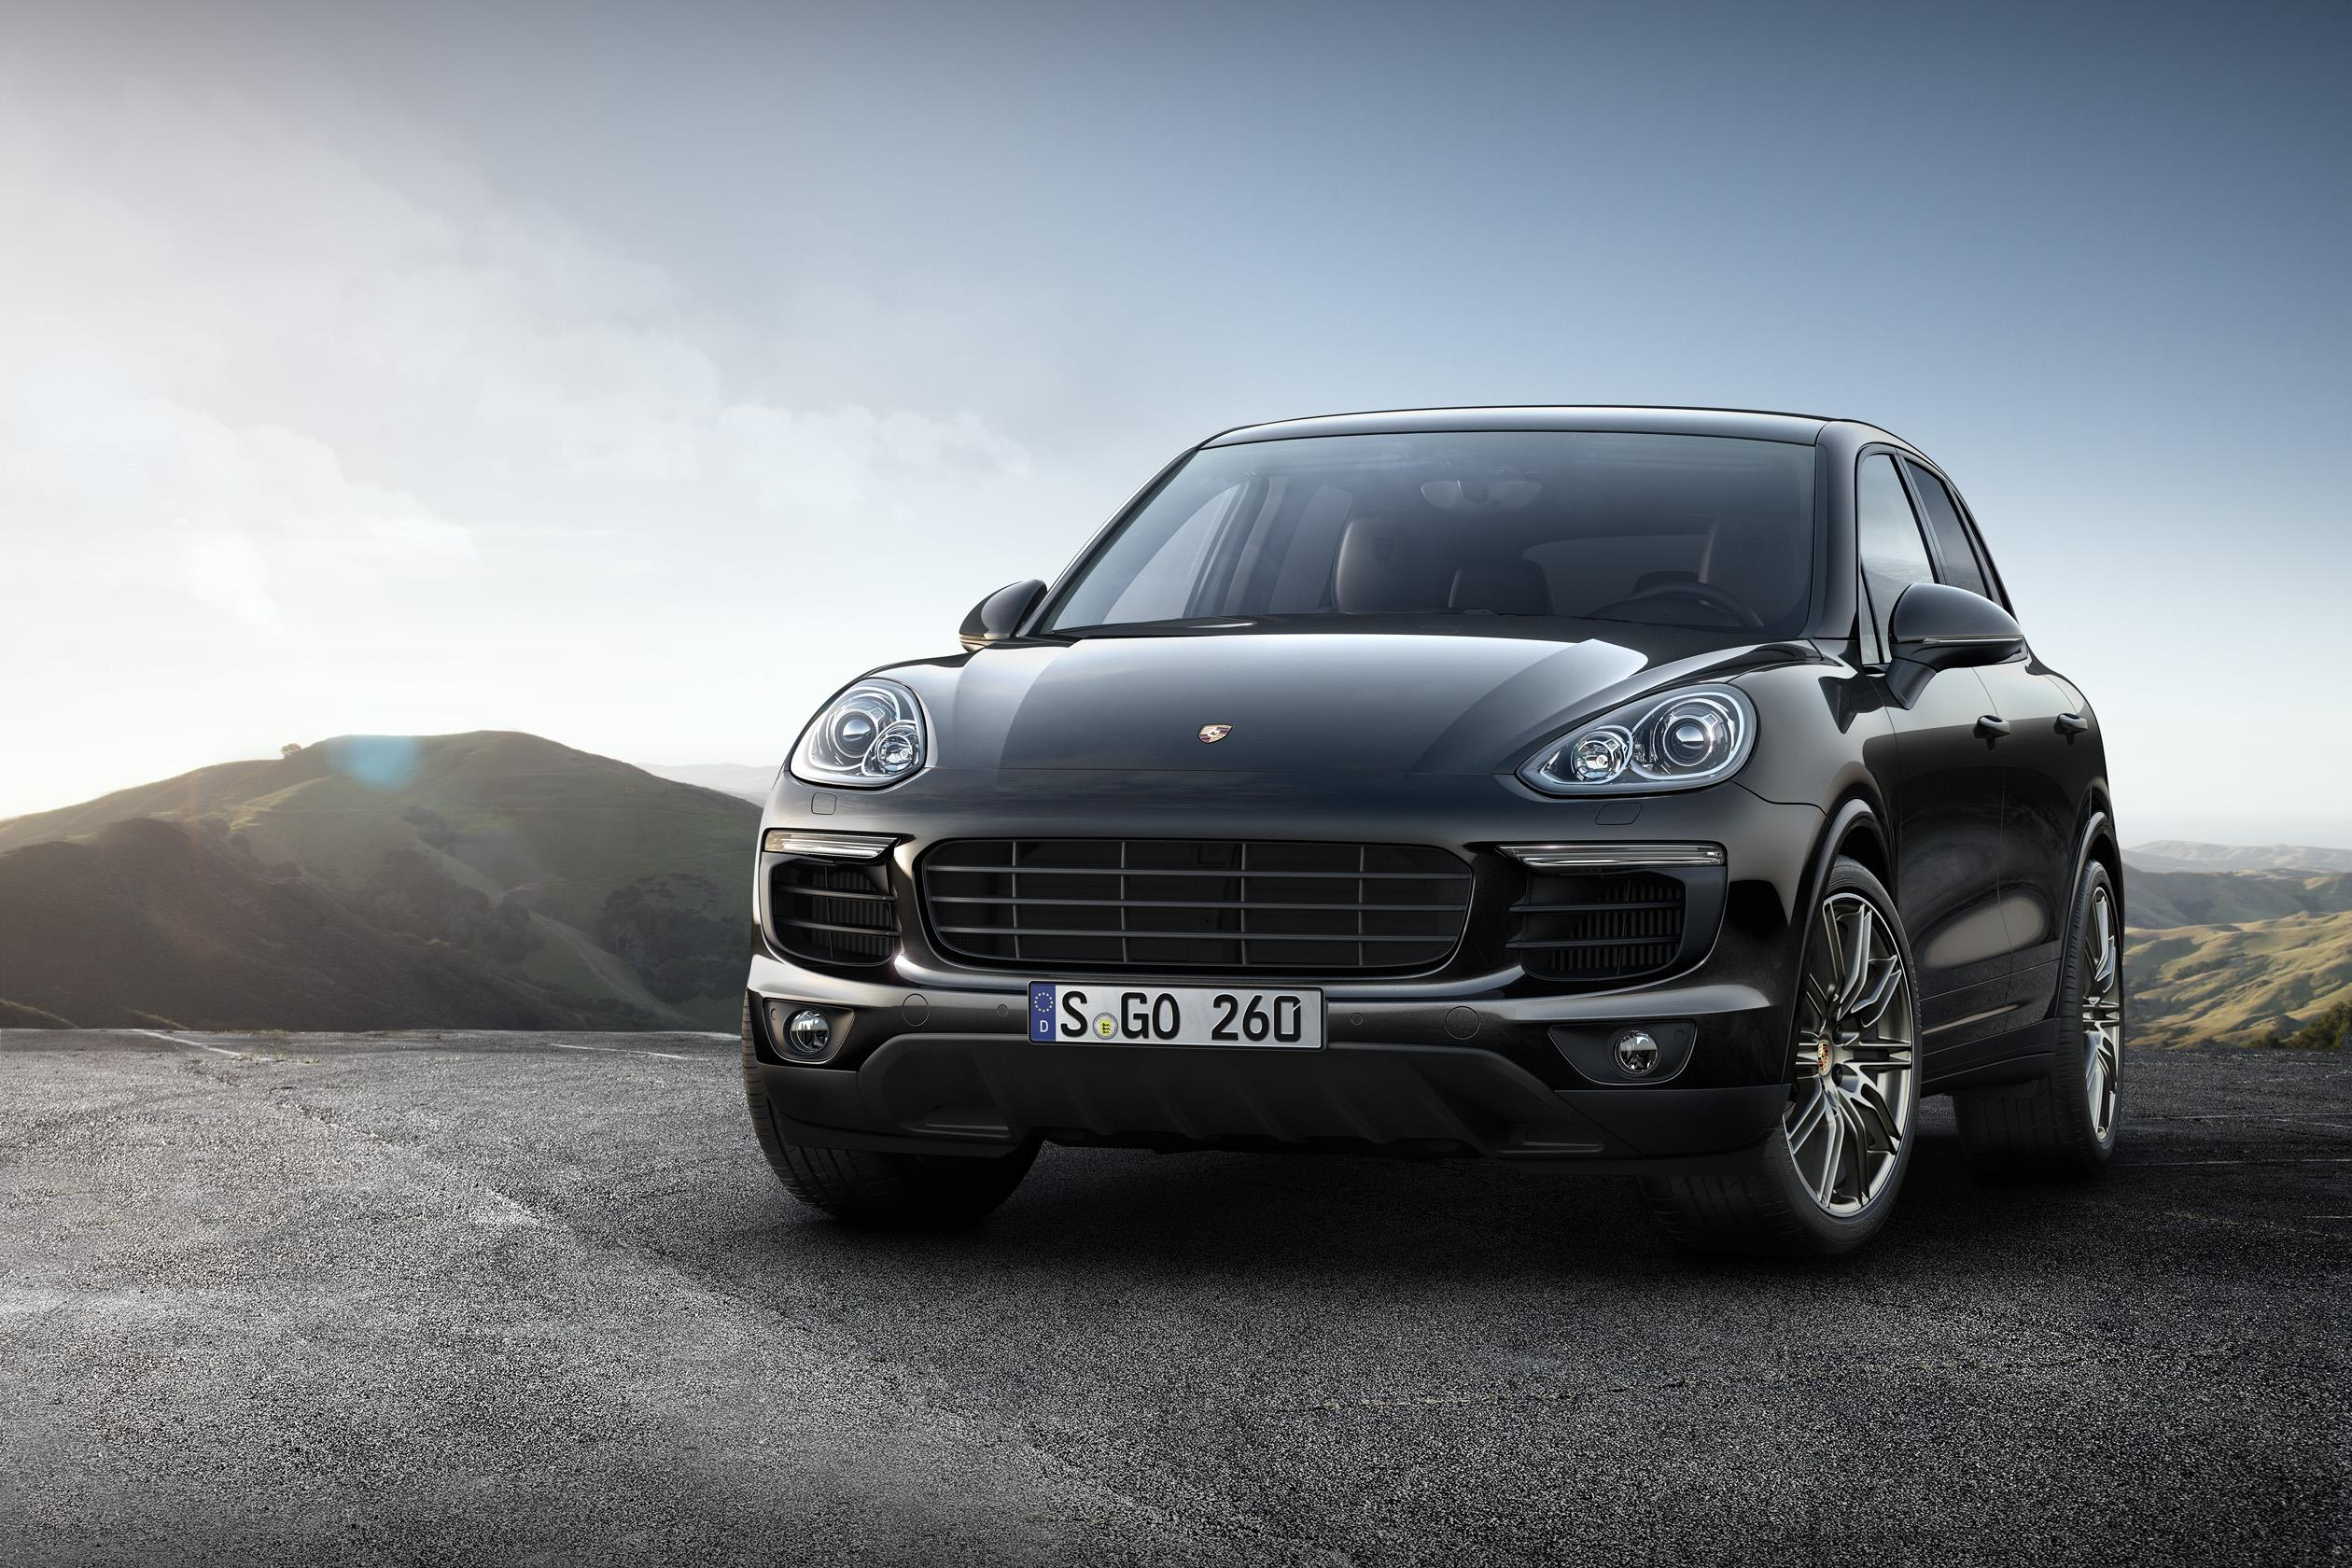 Porsche Cayenne S Platinum edition launched at Rs 1.27 crore